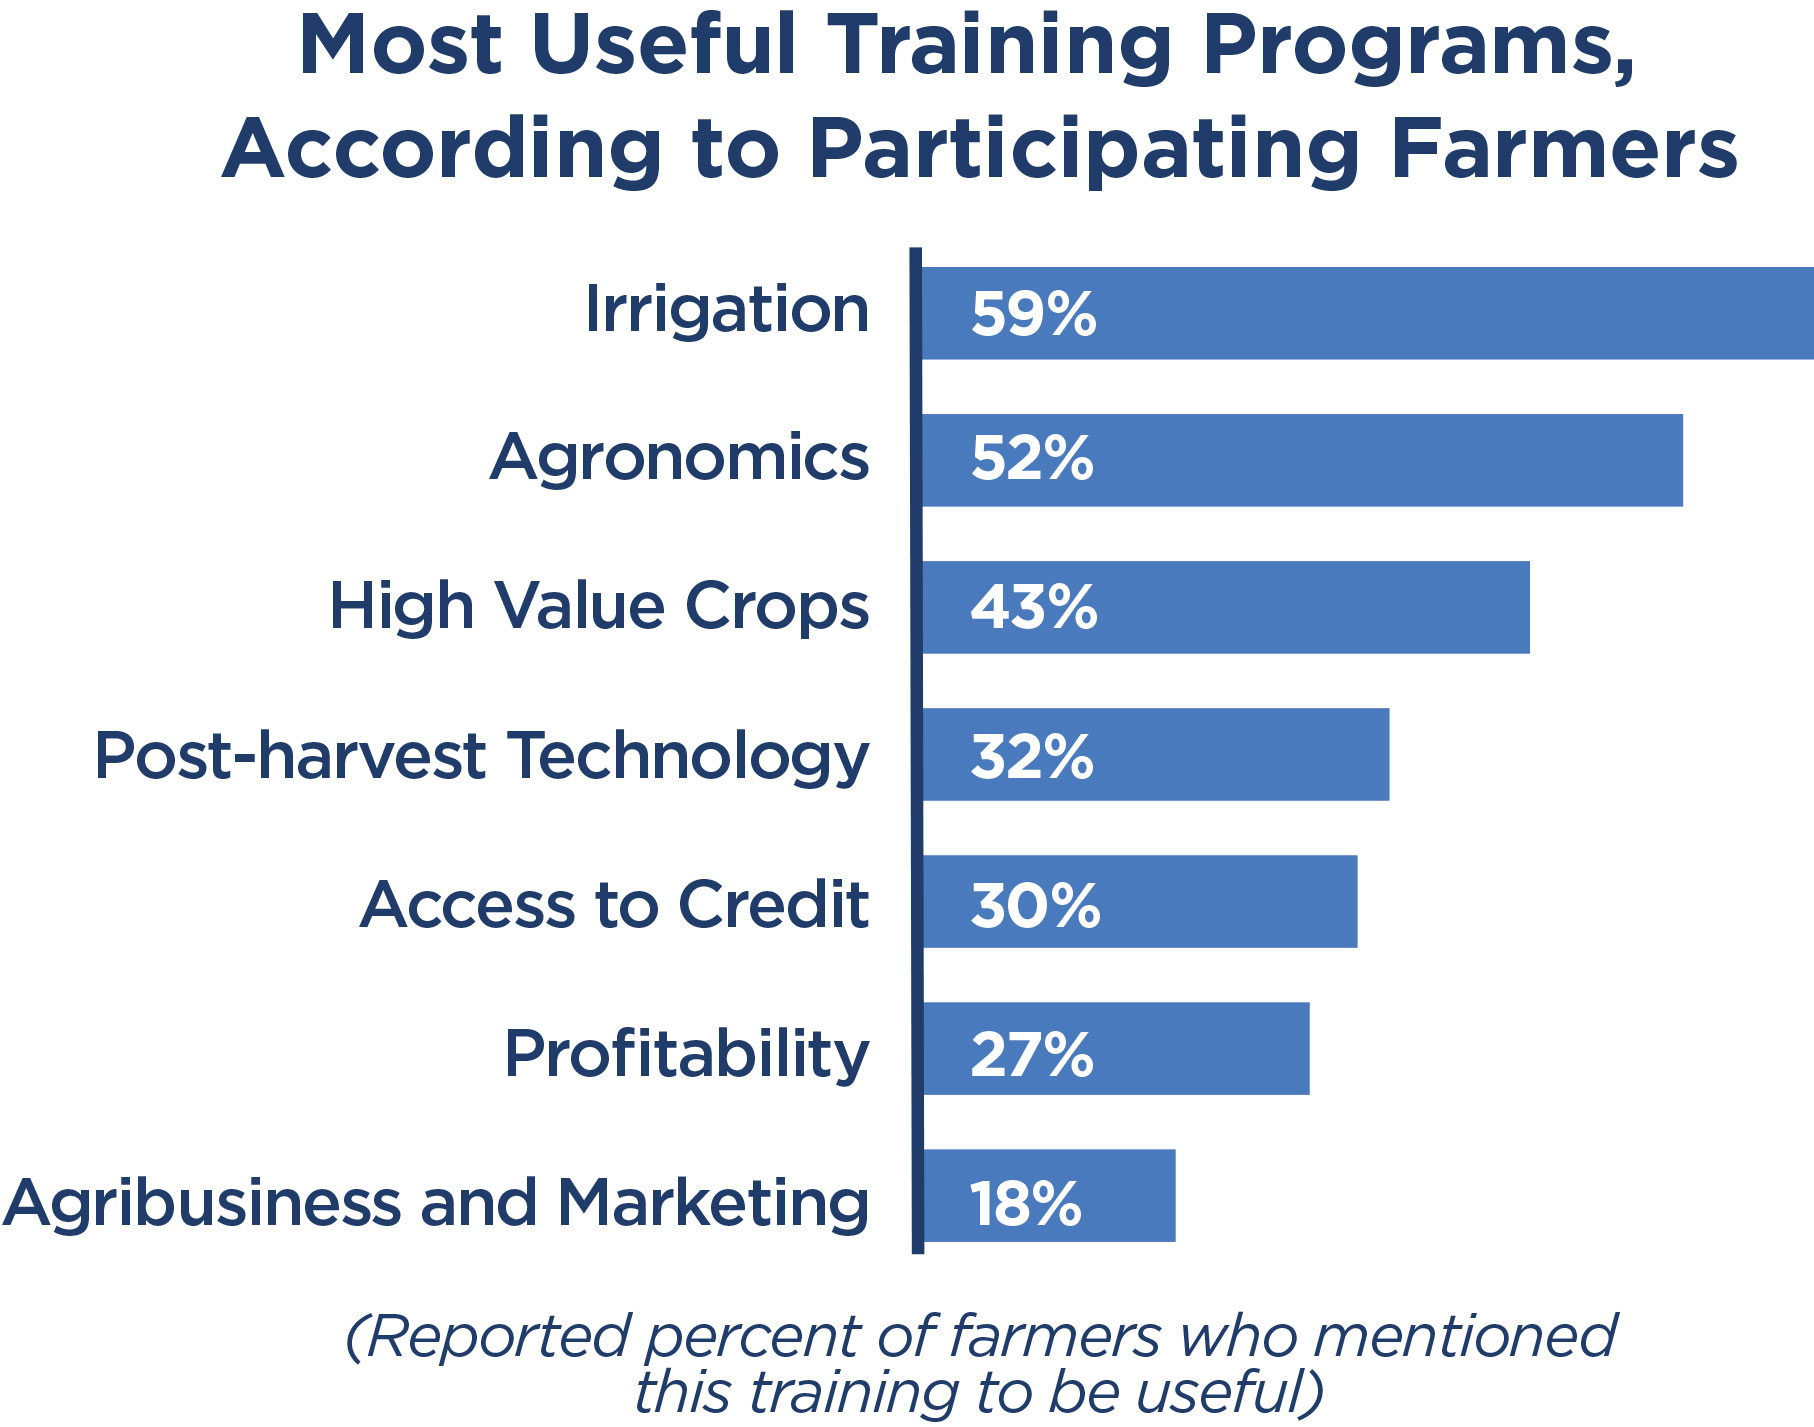 Chart of most useful training programs according to participating farmers